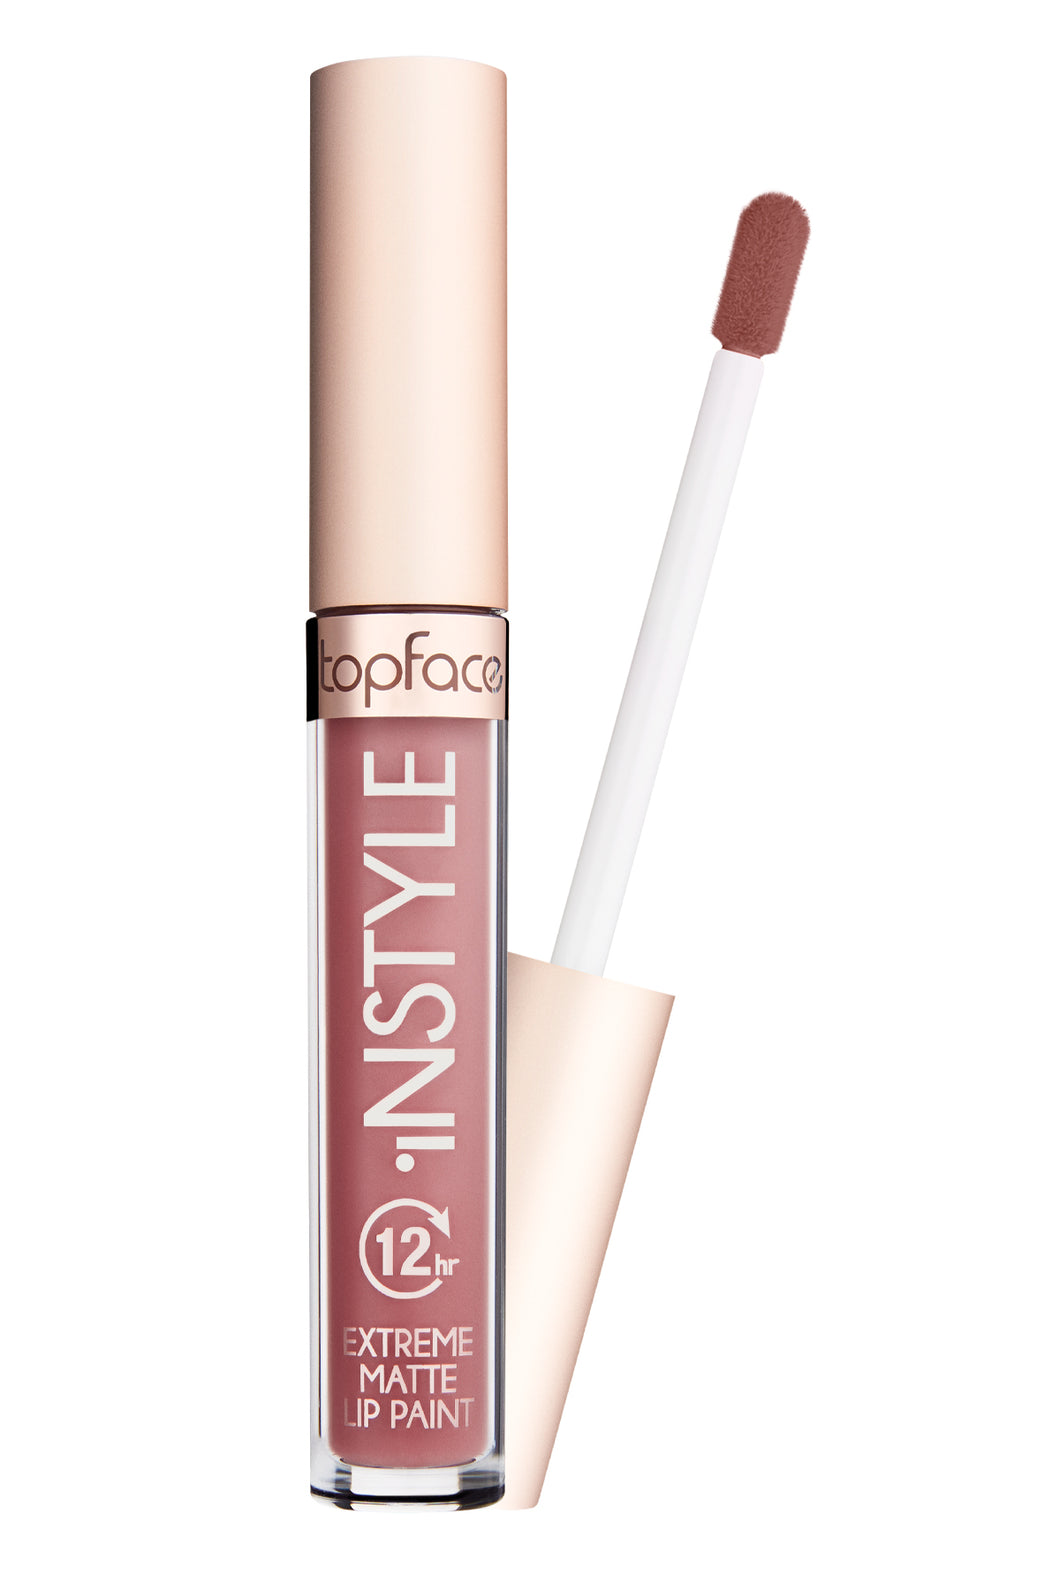 Topface - Instyle Extreme Matte Lippaint - 003